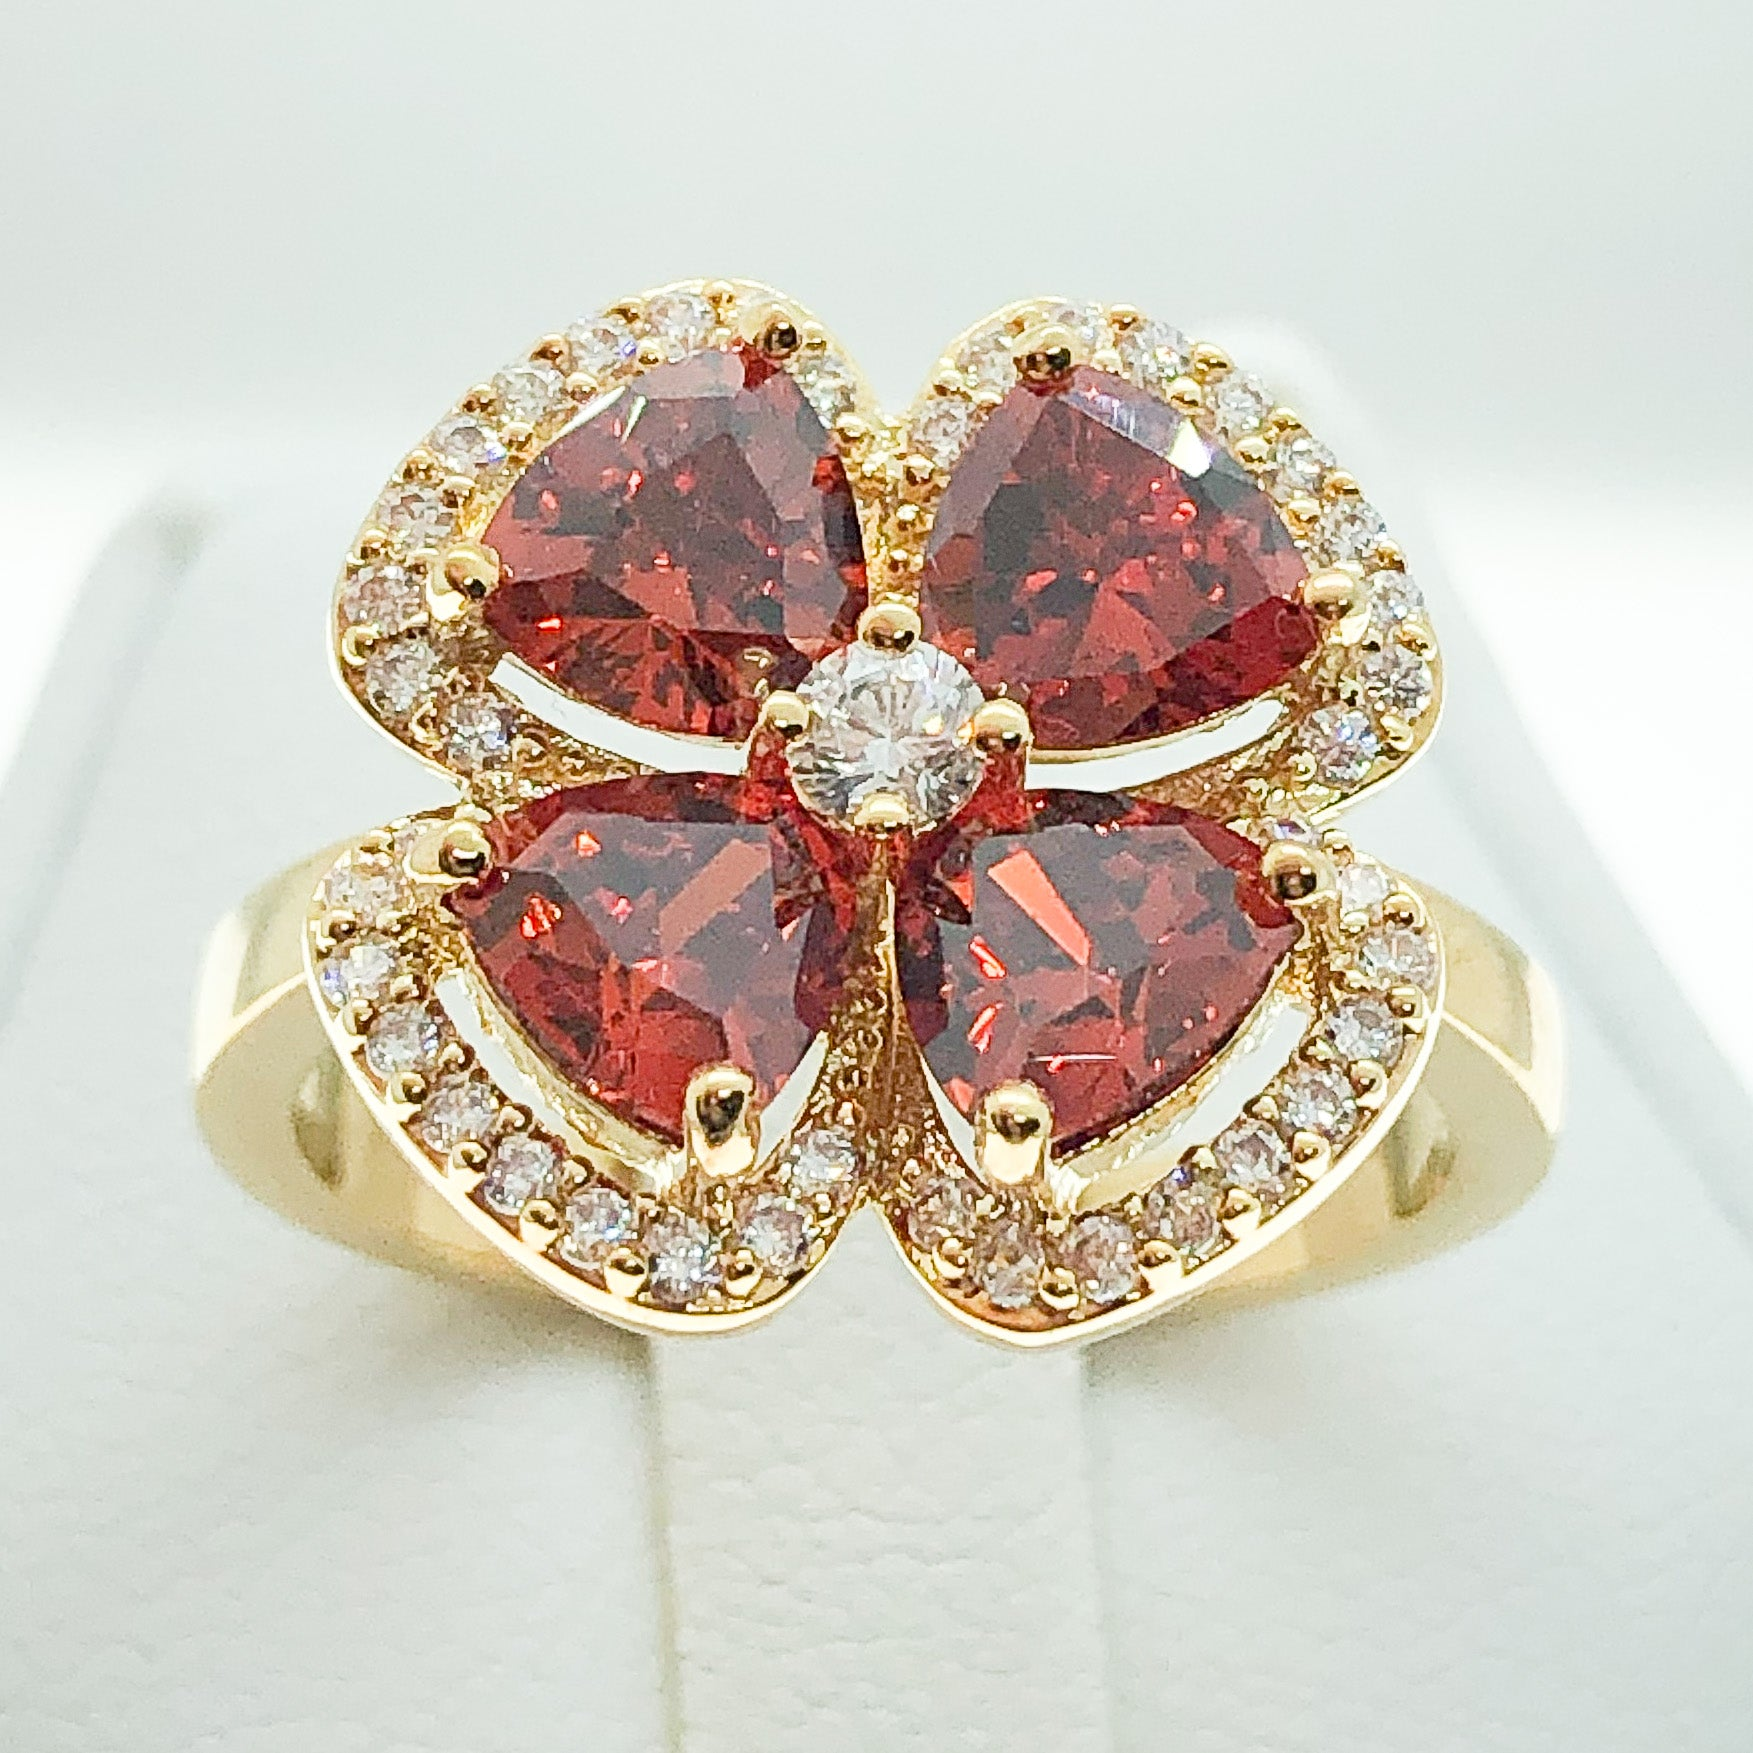 ID:R7170 Women 18K Yellow Gold GF Fashion Jewelry Glamorous Garnet and Clear Stones Floral Ring